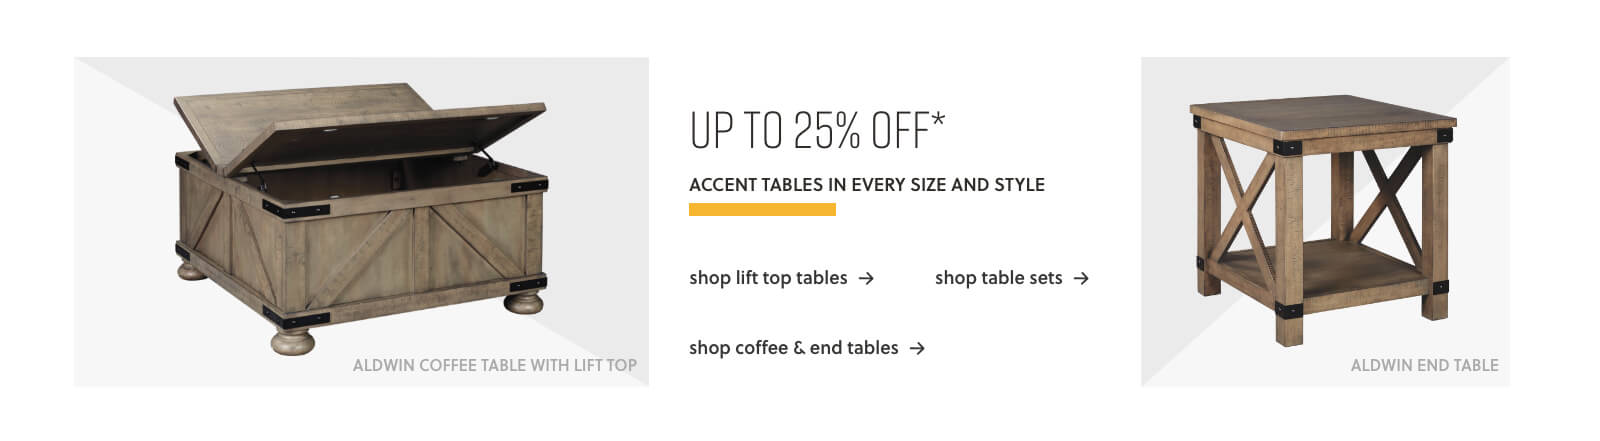 Table Sets, Lift-Top Tables, Coffee and End Tables